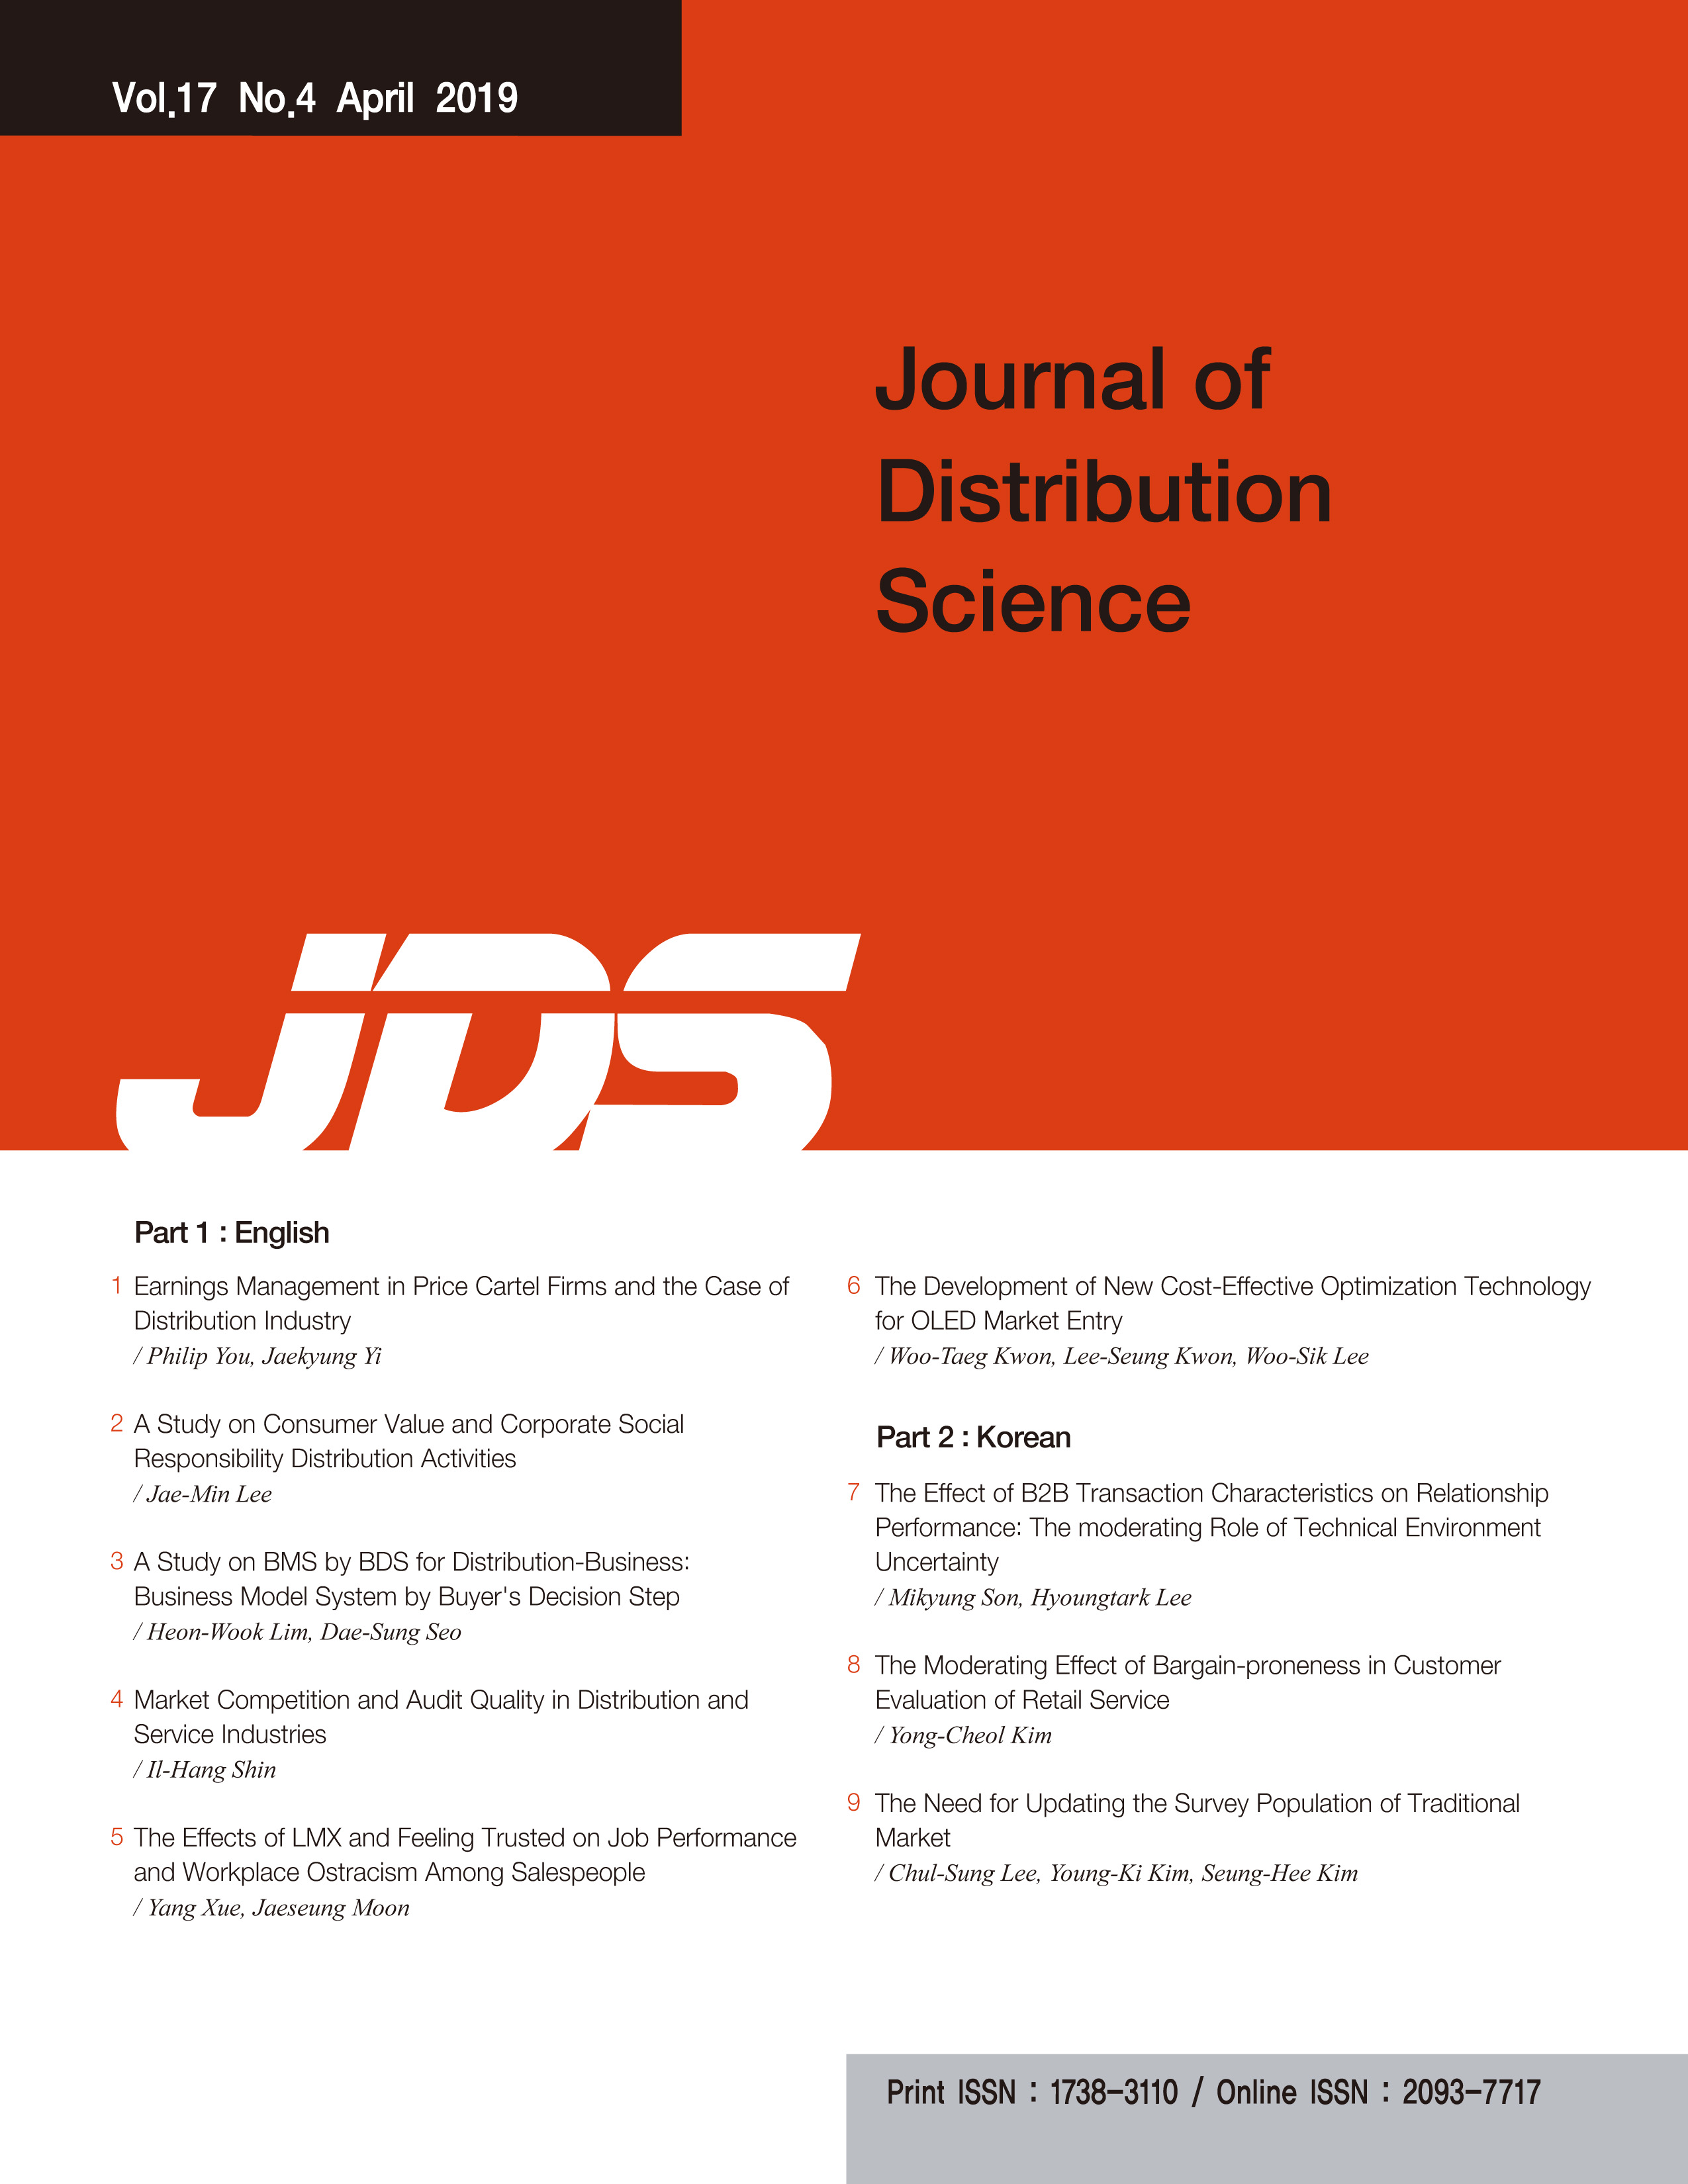 The Journal of Distribution Science